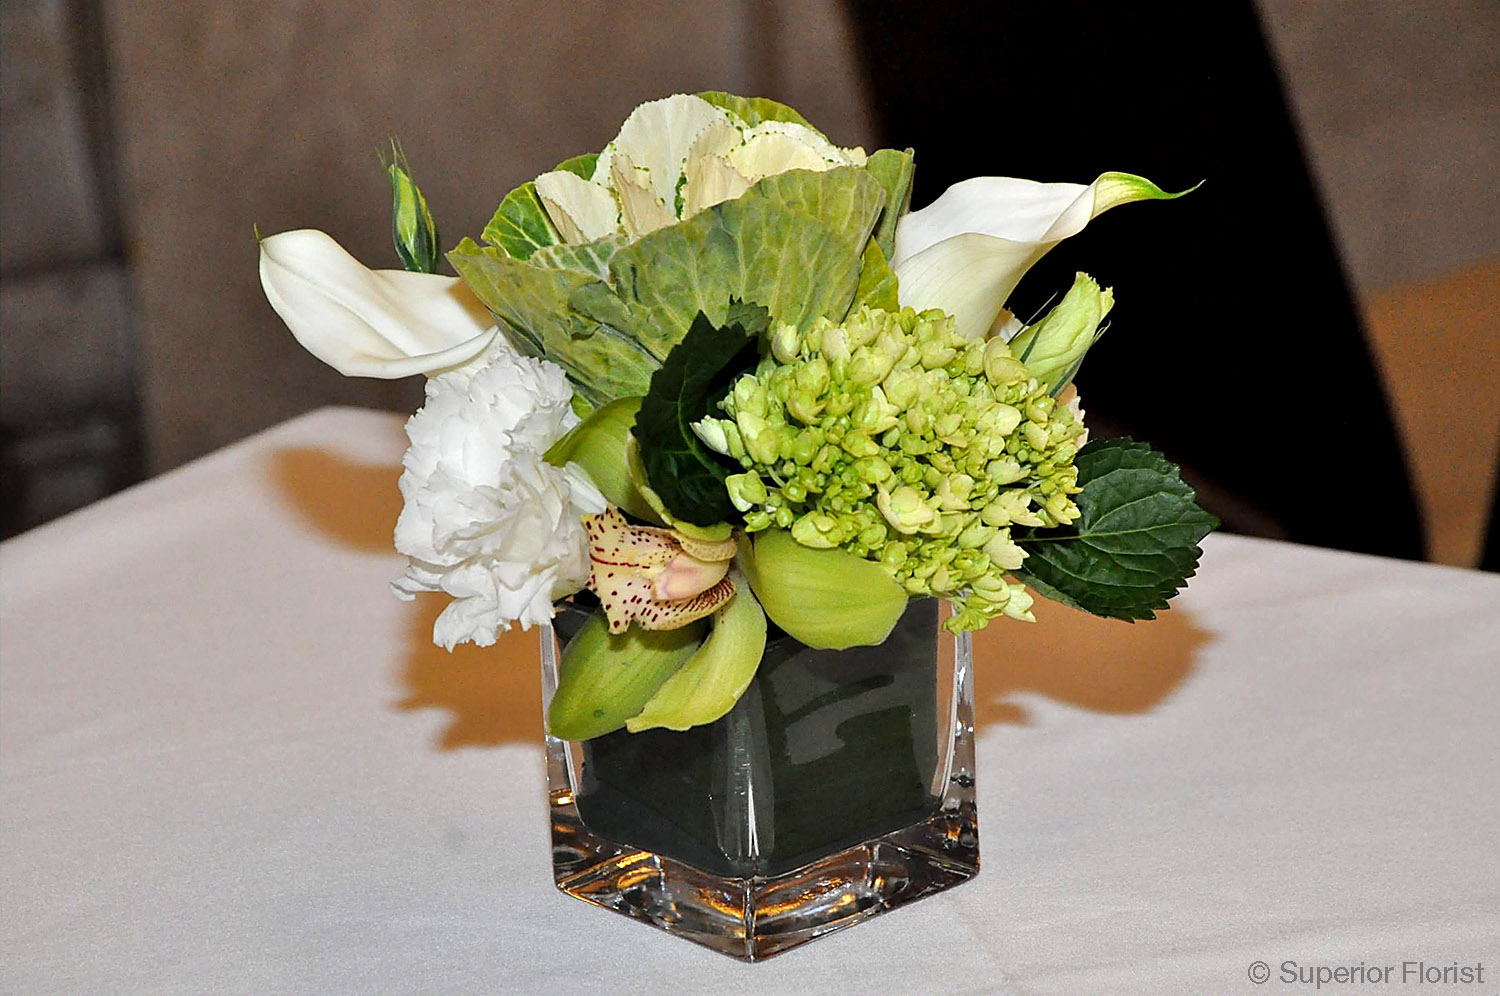 Superior florist event florals superior florist cocktail tables floral arrangement of cymbidium lisianthus kale and callas reviewsmspy